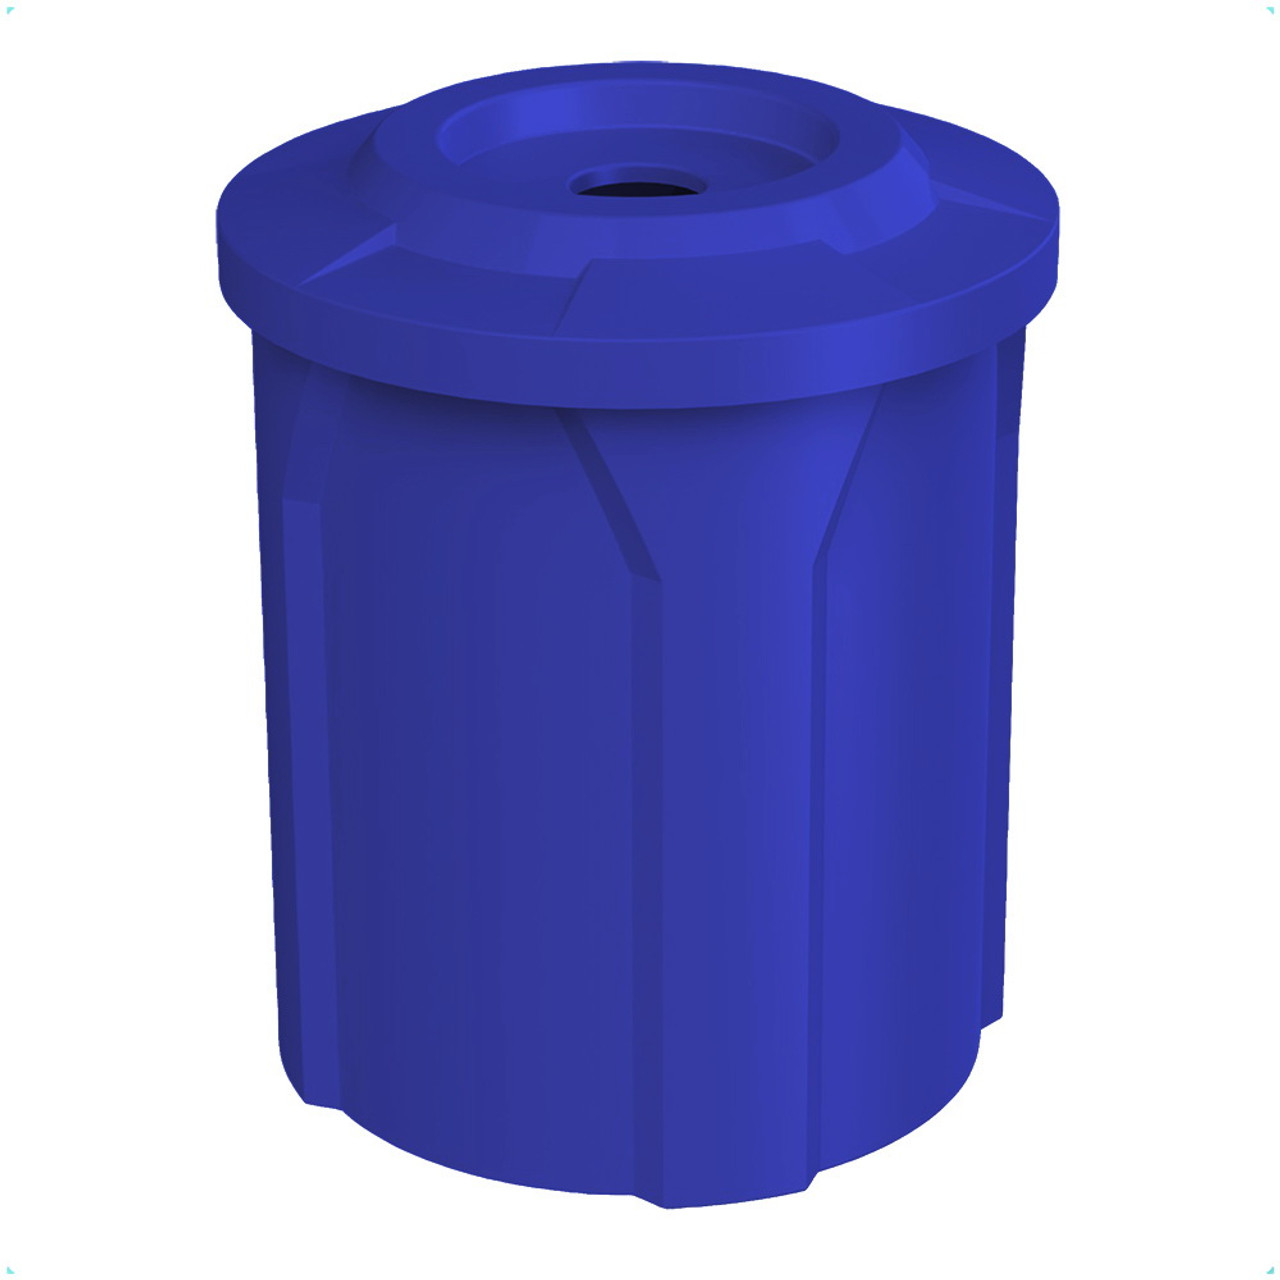 42 Gallon Trash Can with 4 Inch Opening Lid